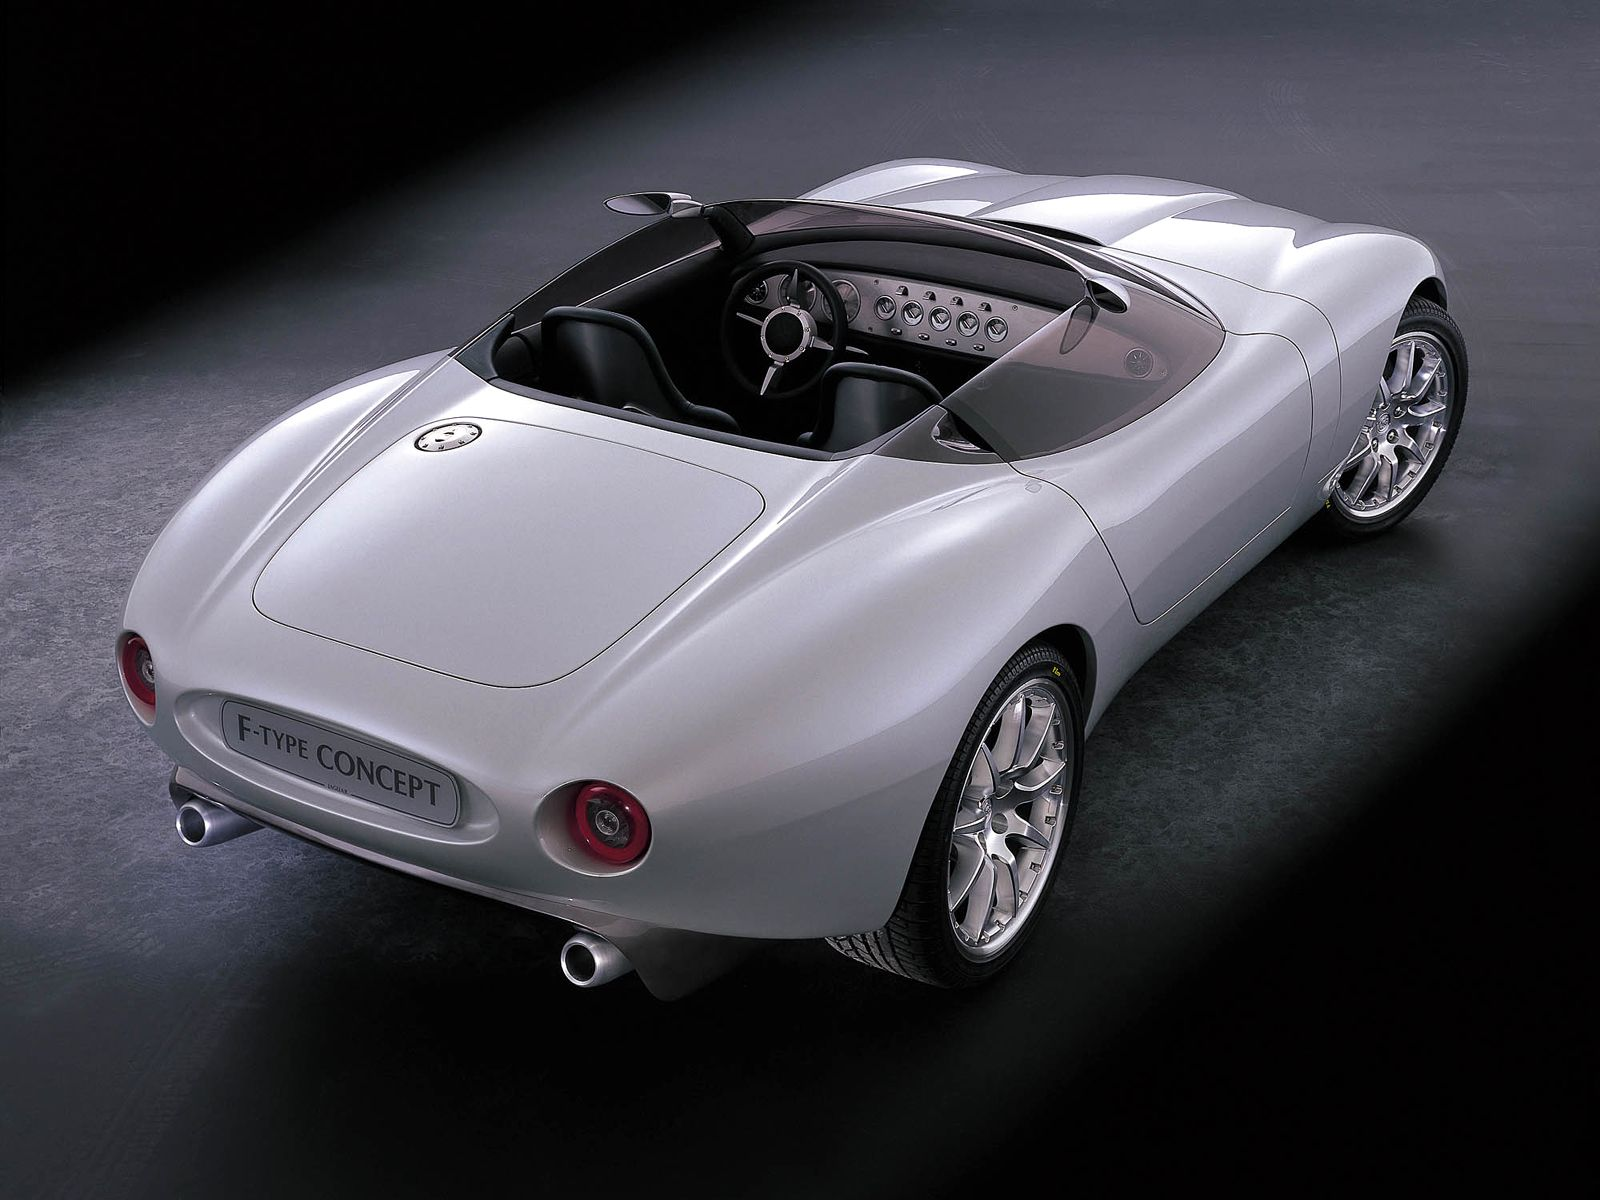 Jaguar f type concept from 2000